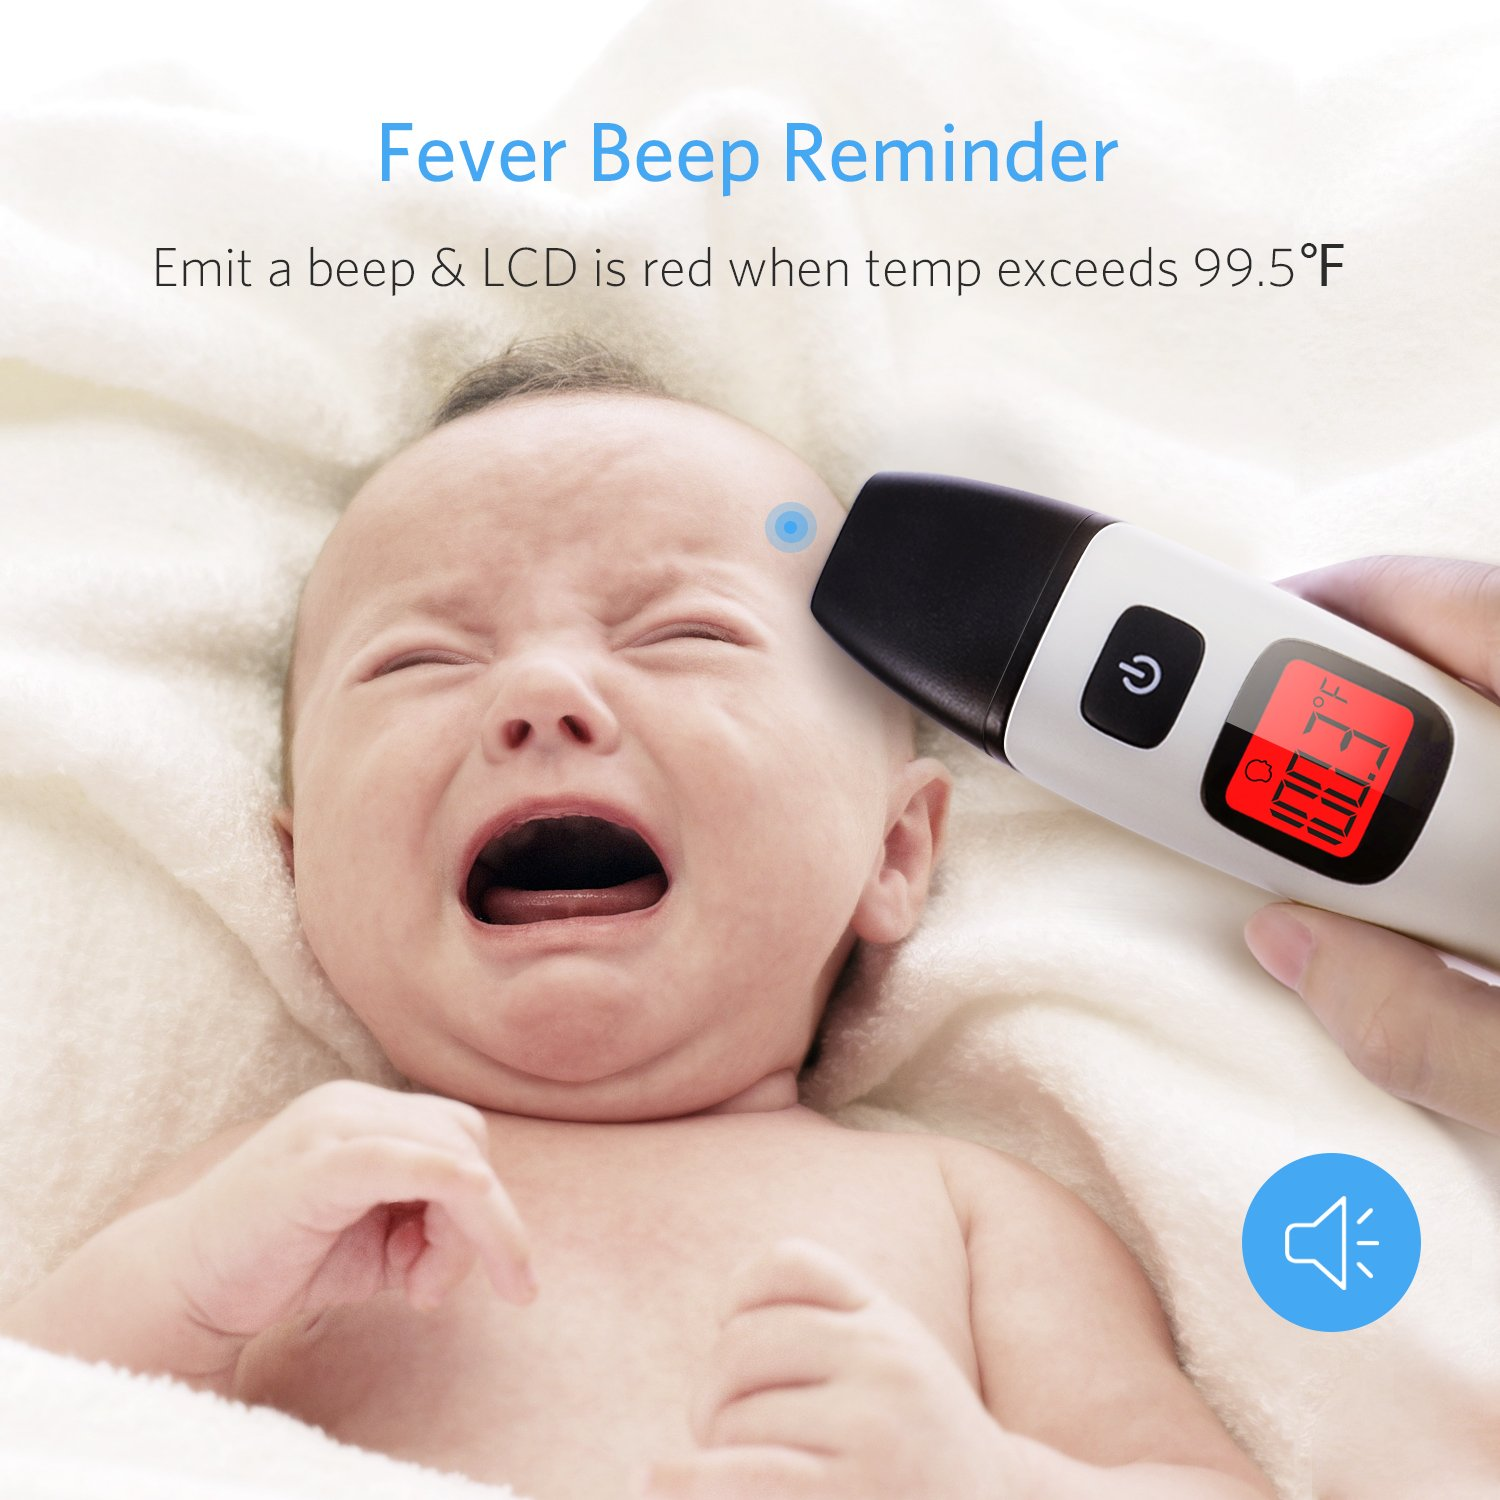 HOMIEE Black Thermometer, Ear Thermometer for Kids, Non Contact Infrared Digital Forehead Thermometer with Fever Alert and Three Color Backlit for Baby and Adults, FDA and CE Certifications Approved by HOMIEE (Image #5)